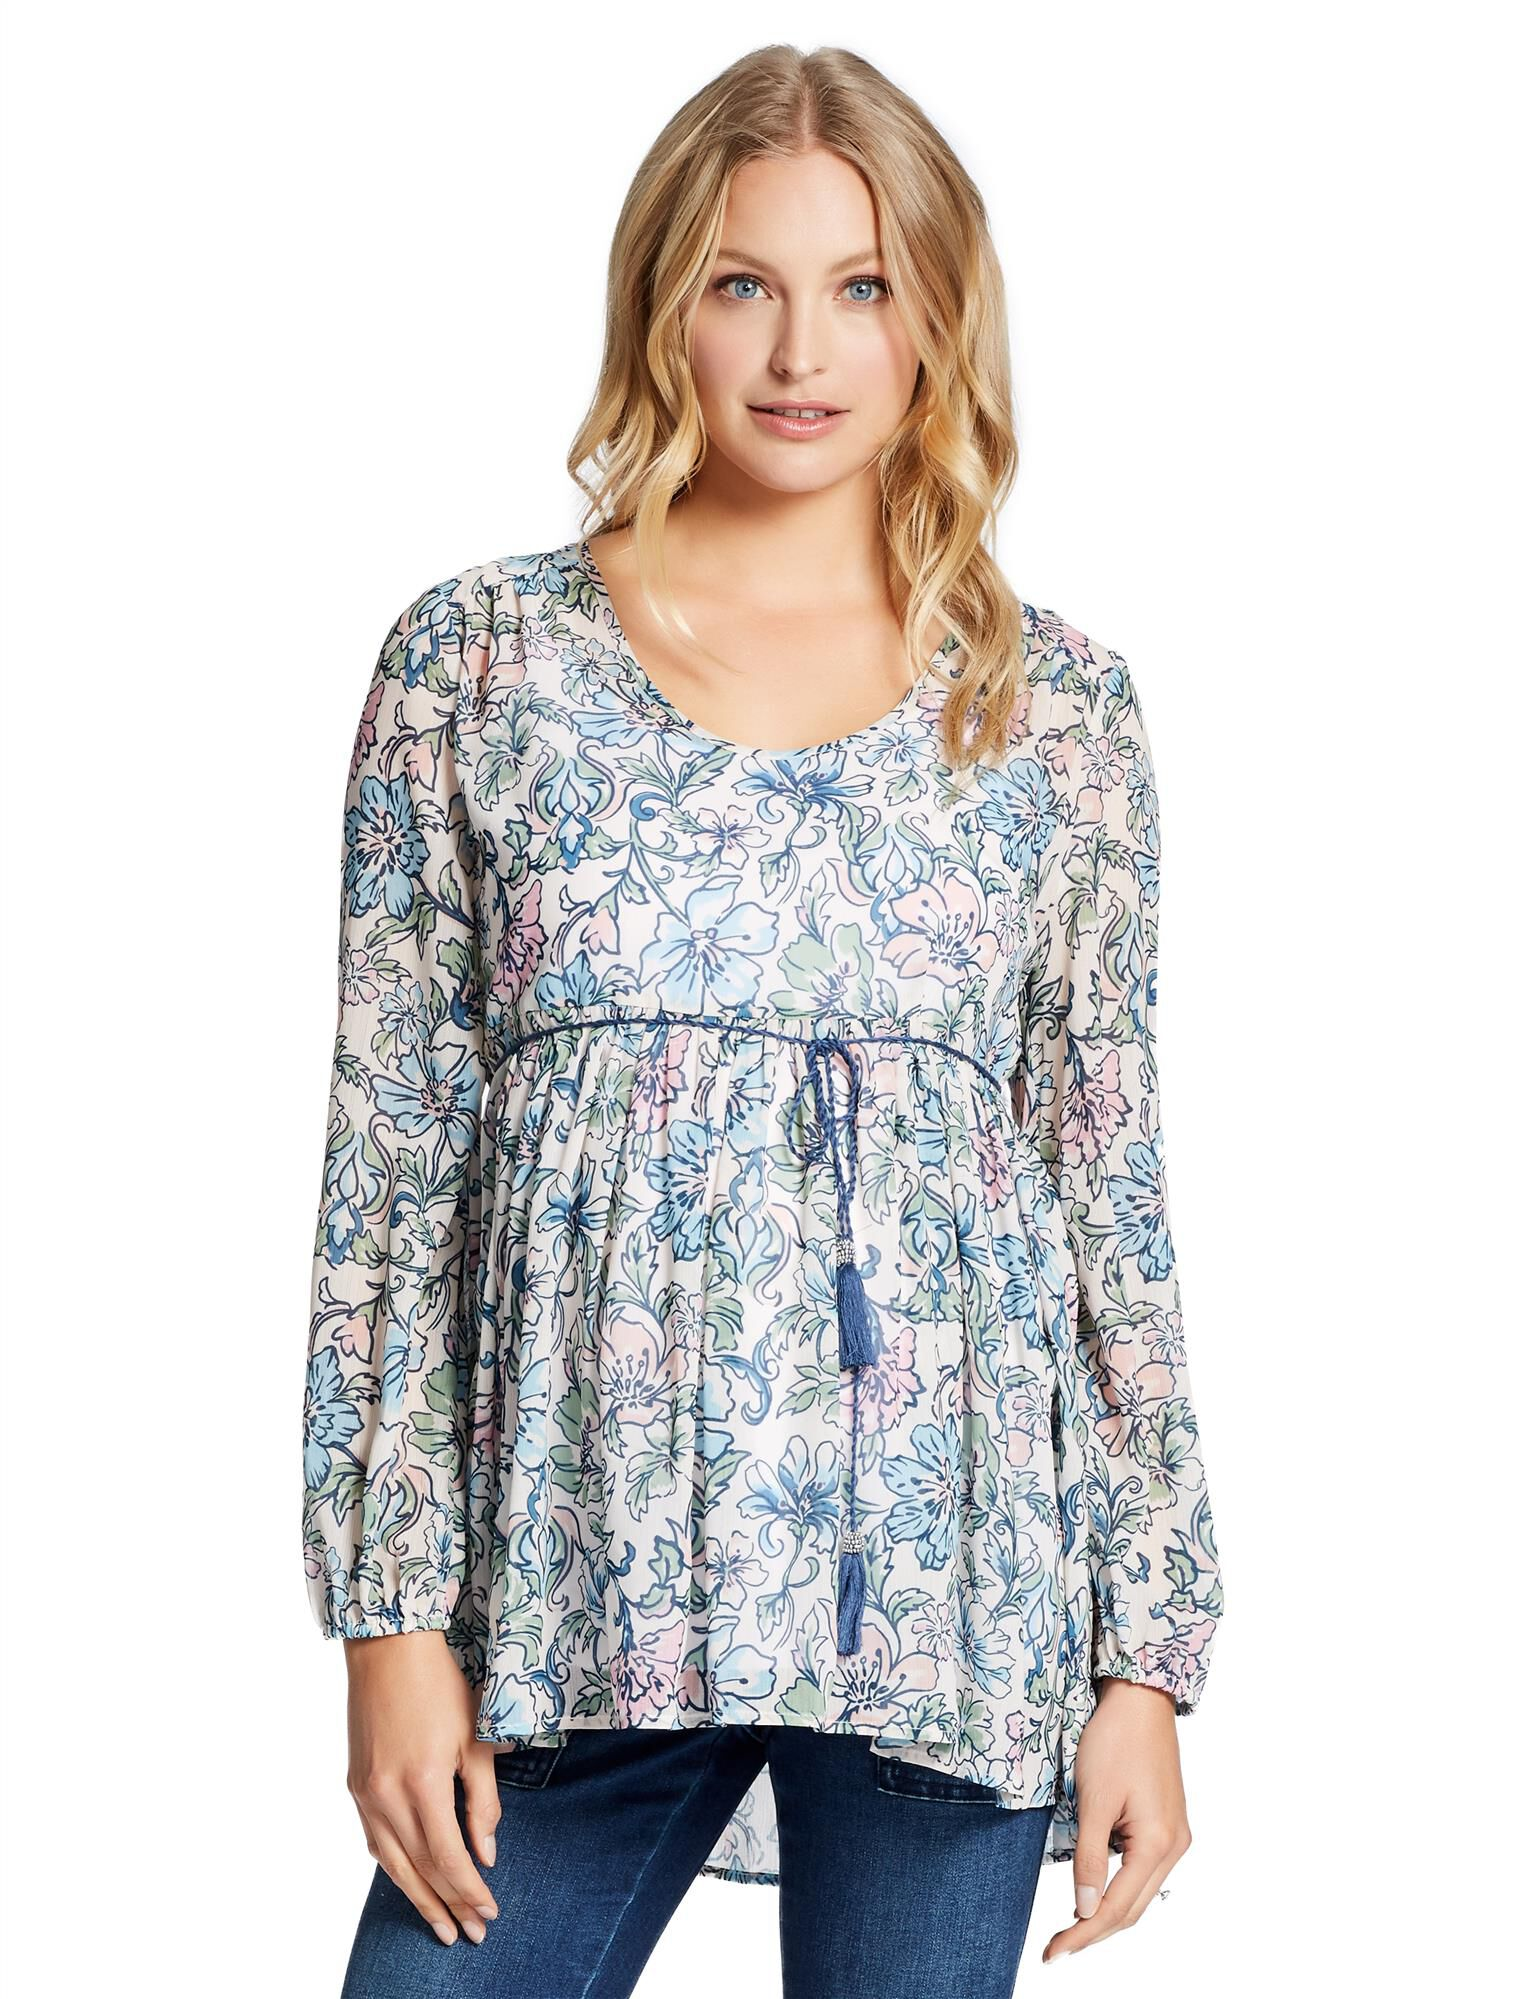 Jessica Simpson Babydoll Maternity Blouse